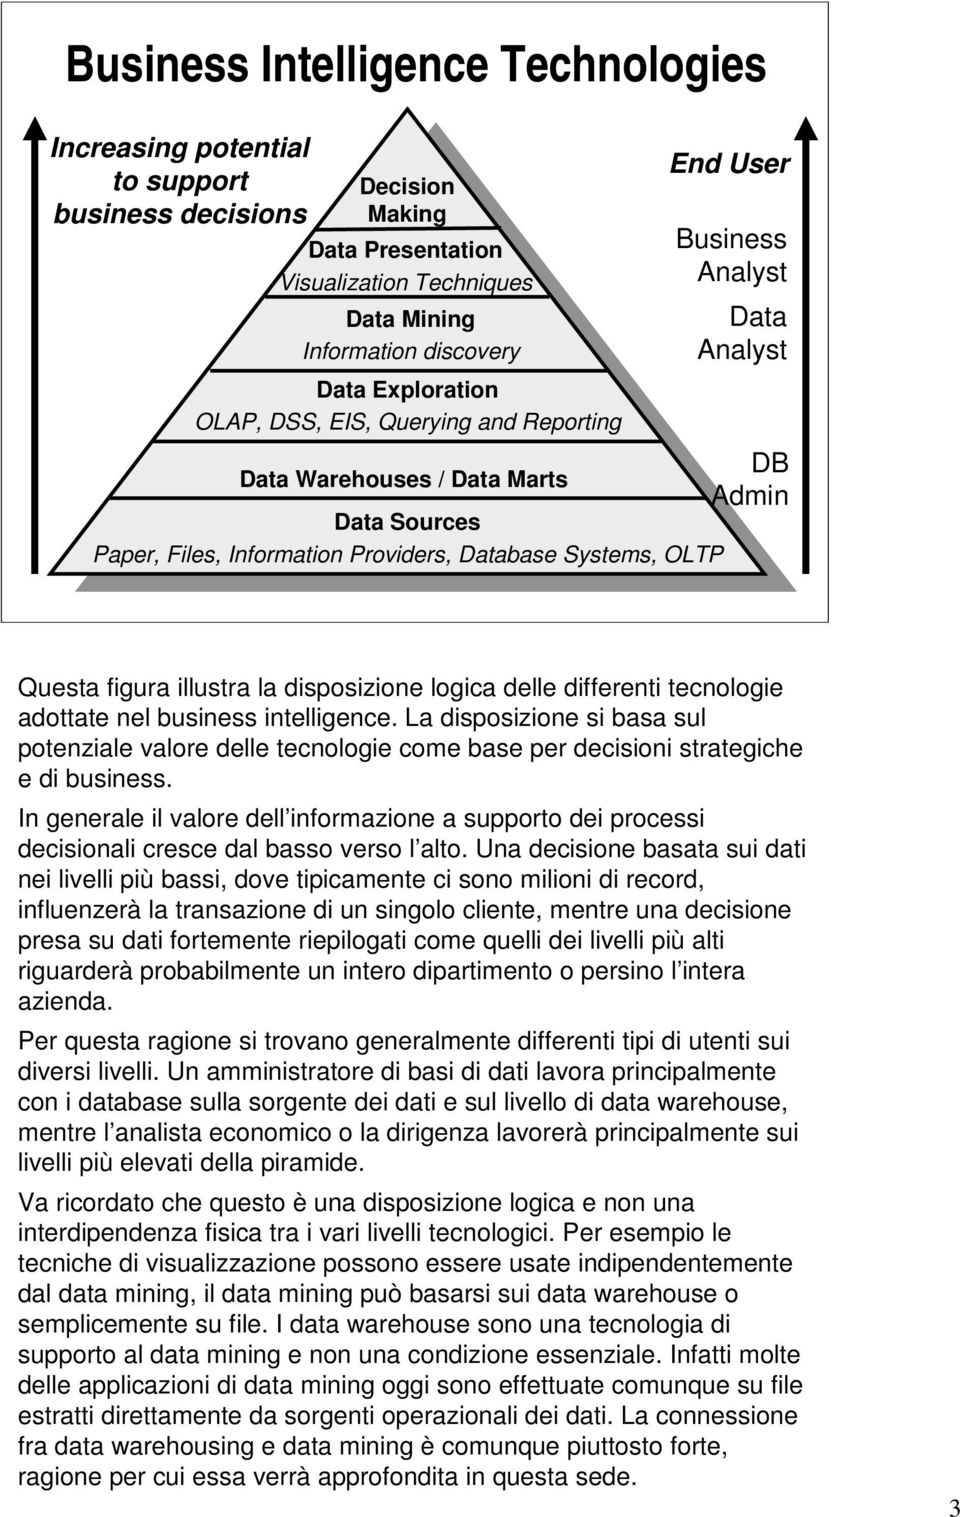 figura illustra la disposizione logica delle differenti tecnologie adottate nel business intelligence.